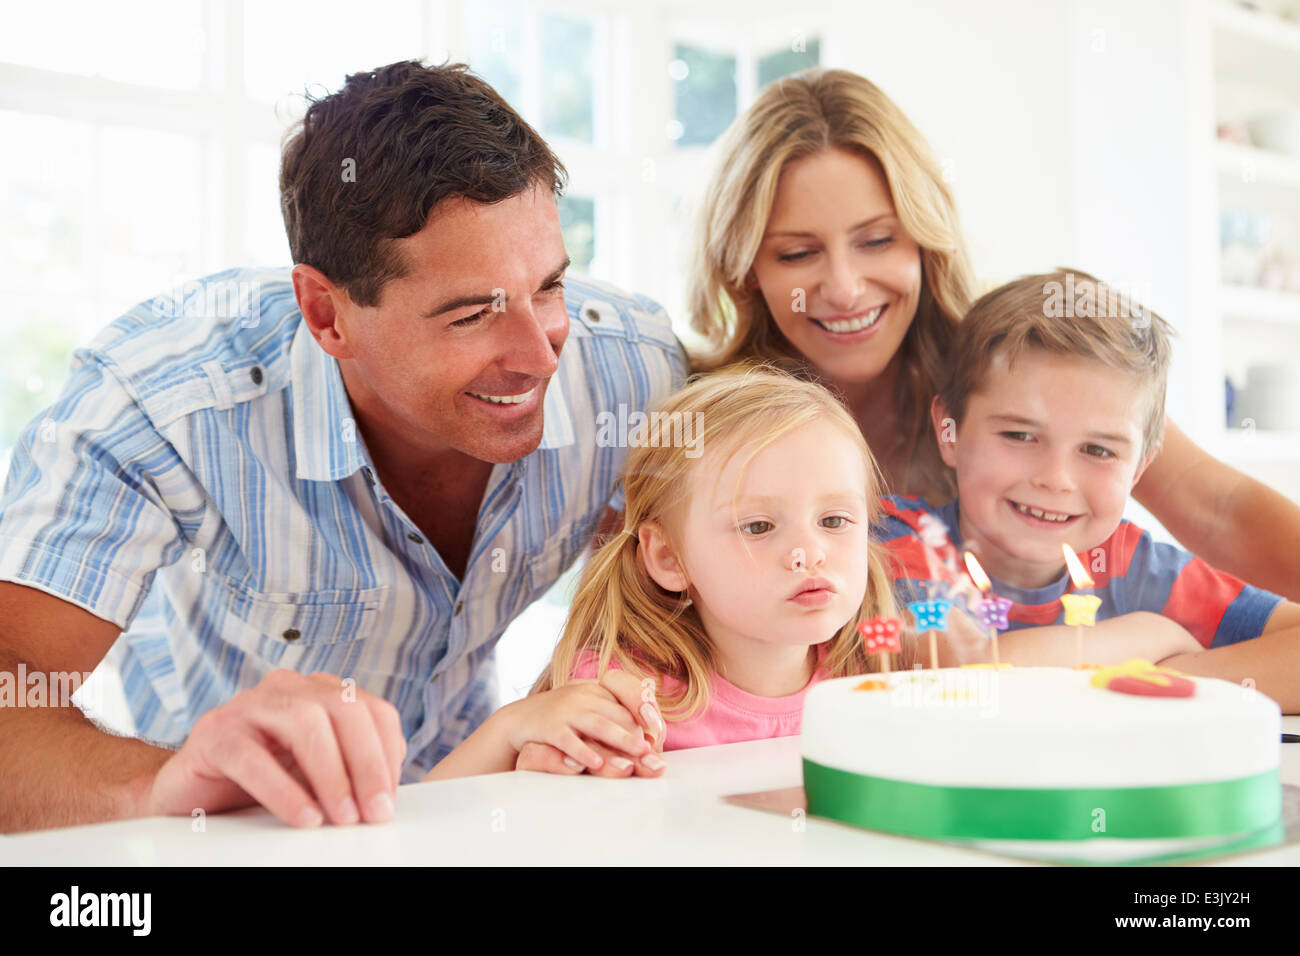 Family Celebrating Daughters Birthday With Cake - Stock Image